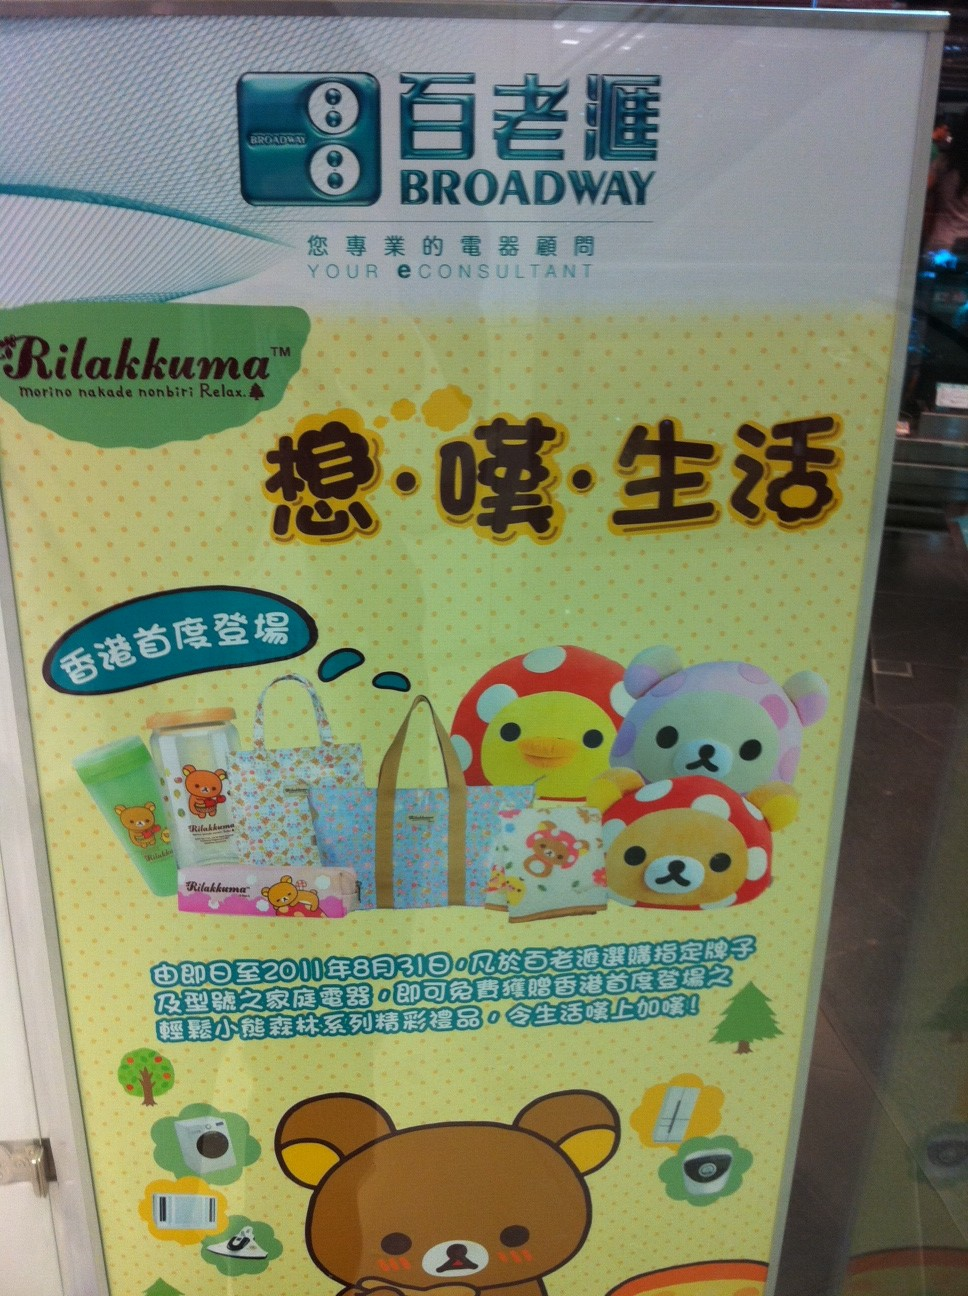 broadway e1312187204382 GWP Promo by Broadway   Rilakkuma license.